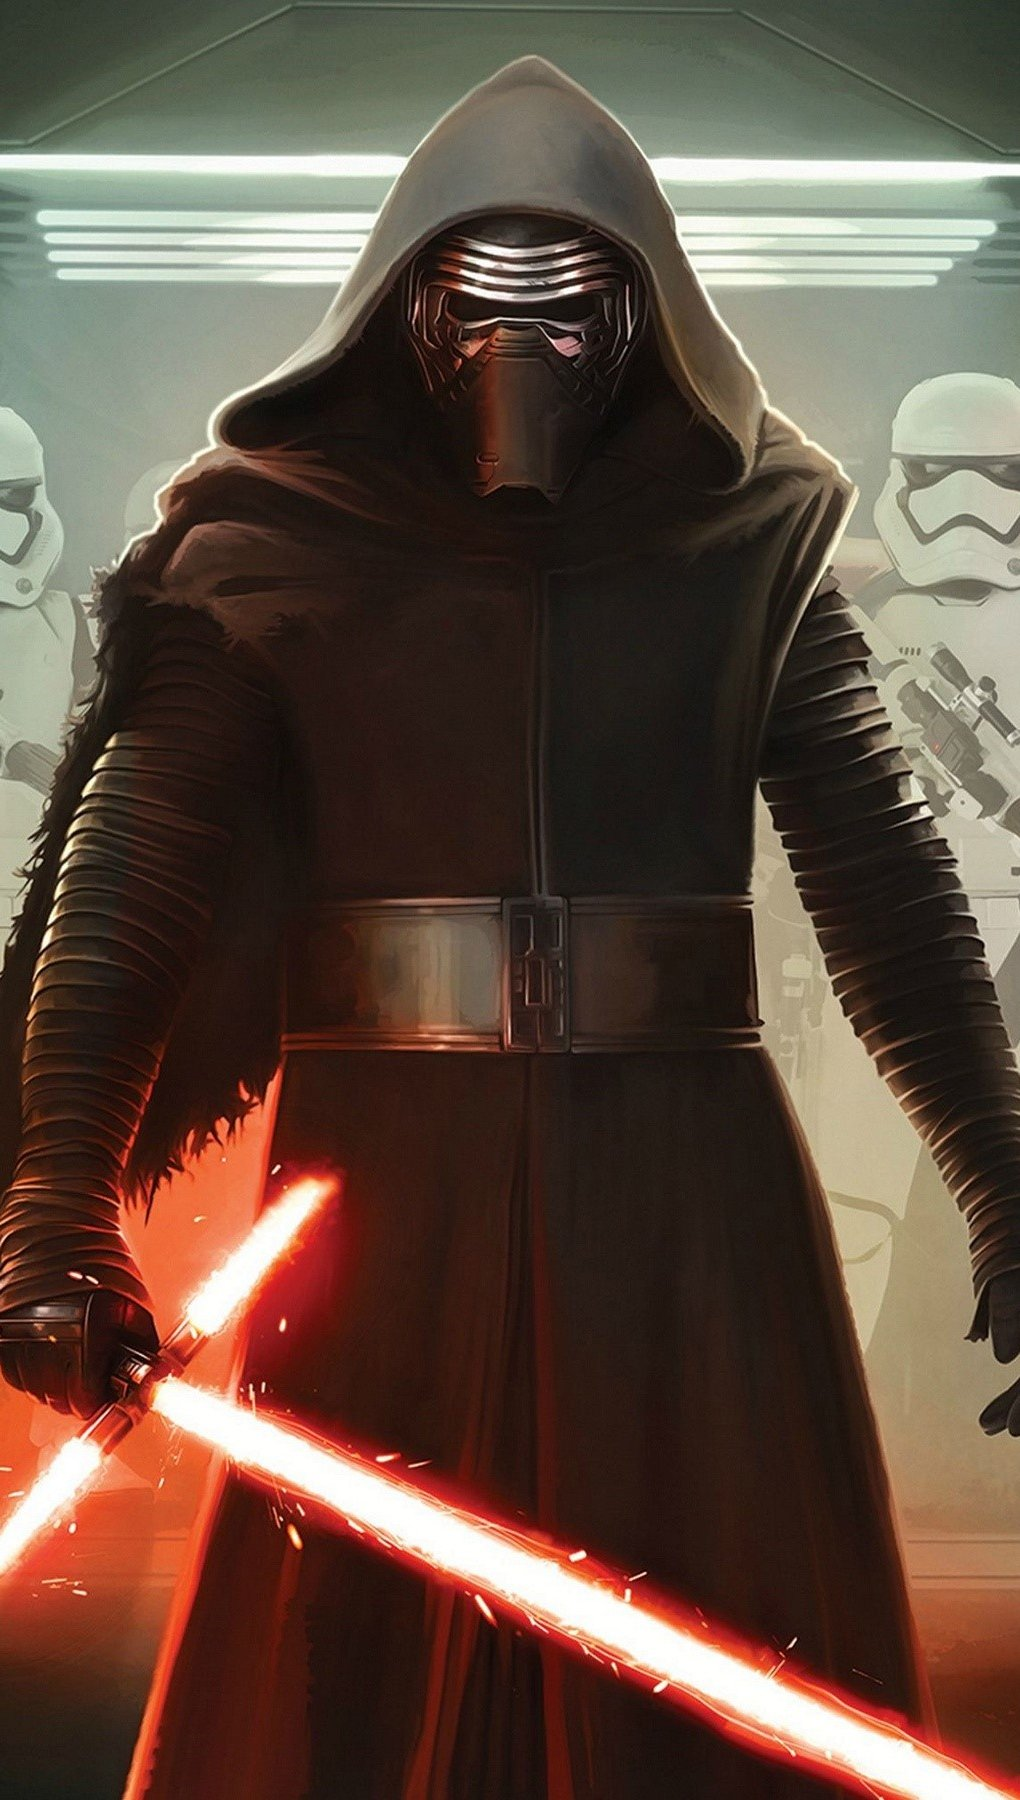 Wallpaper Kylo ren and the imperial soldiers Vertical